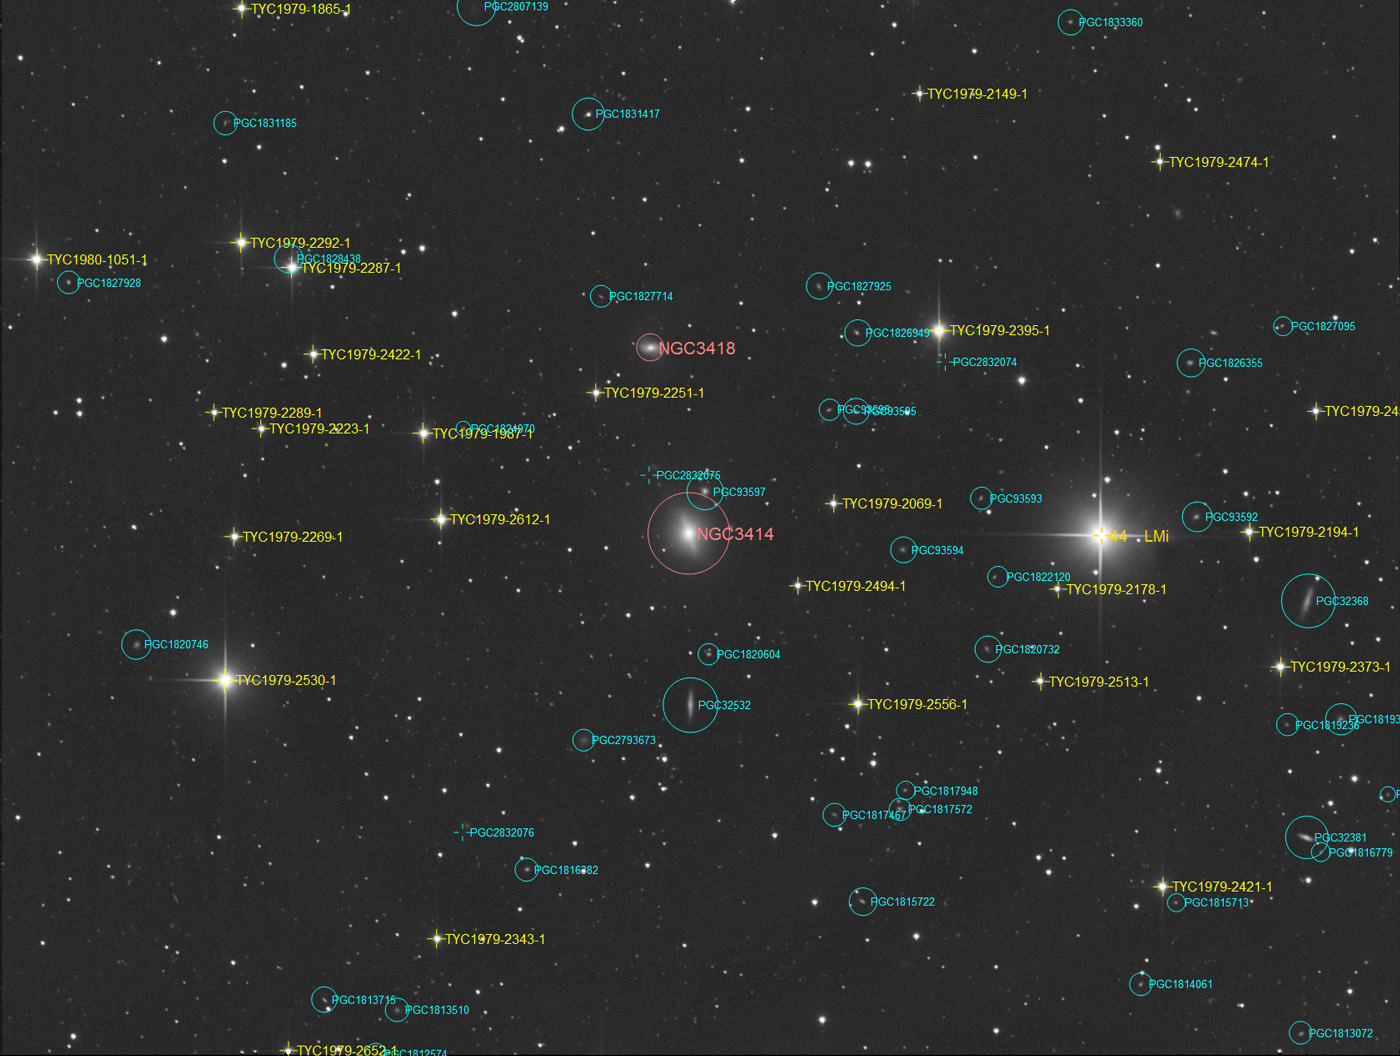 Ciel profond d'hiver - Page 3 Ngc3414_arp162__Annotated